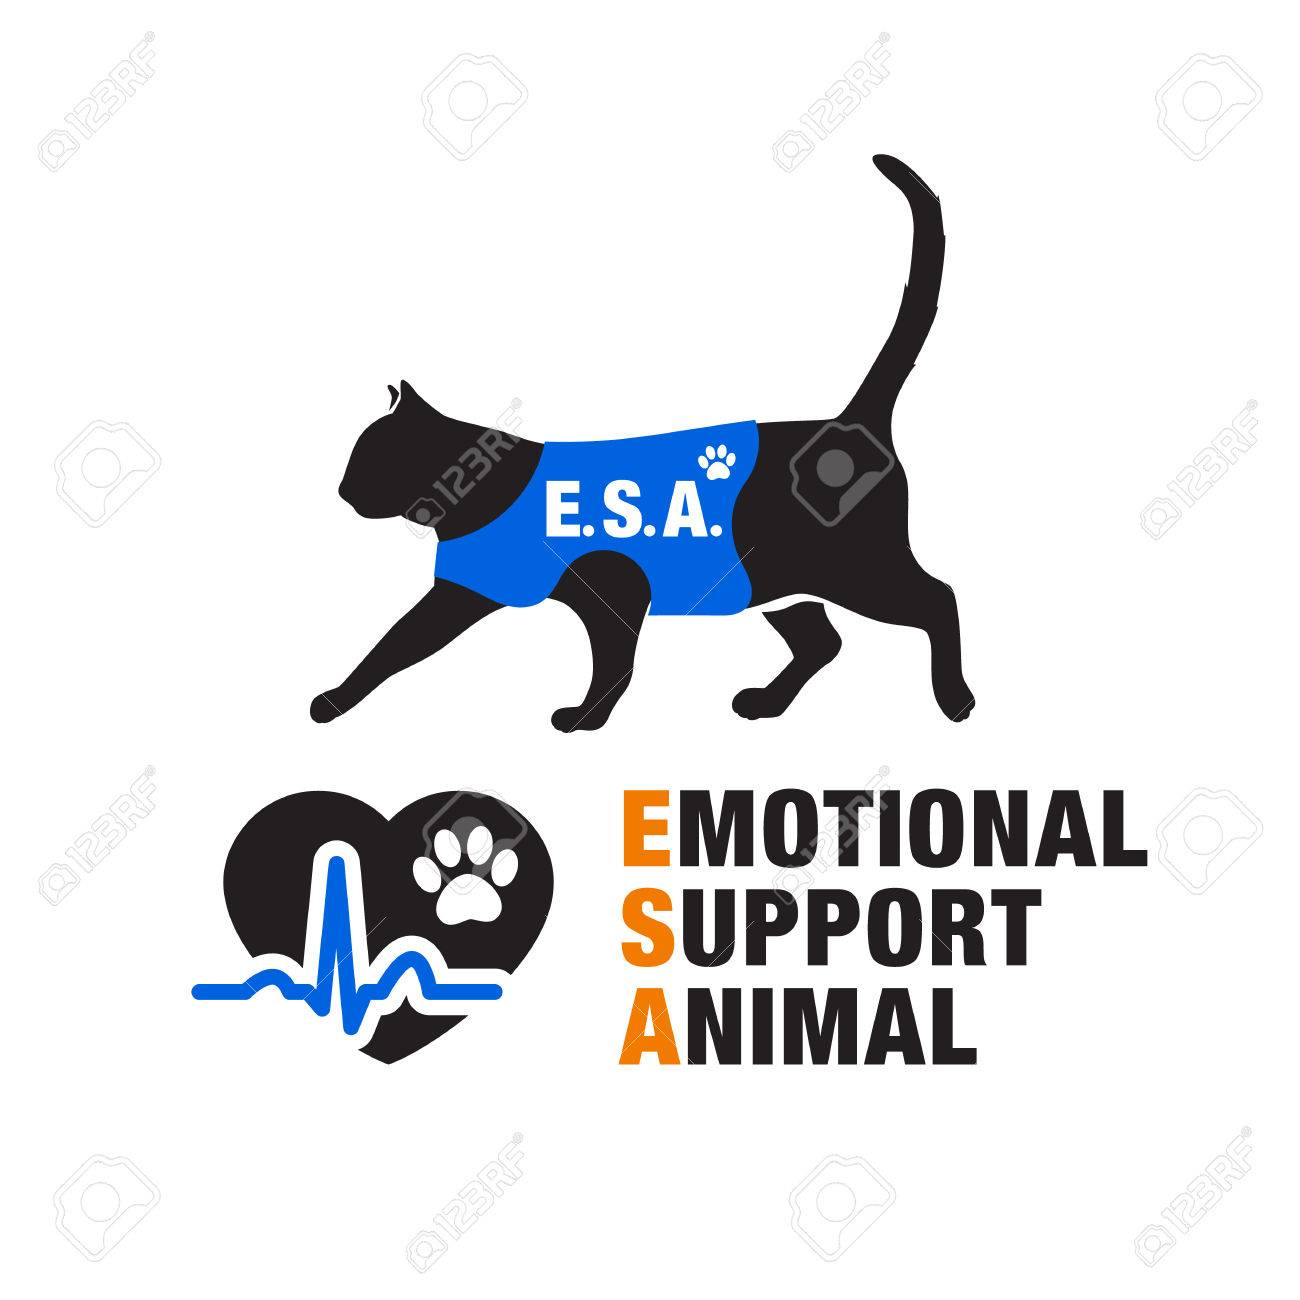 Image of: Funny Emotional Support Animal Emblems Stock Vector 74772283 Fox News Emotional Support Animal Emblems Royalty Free Cliparts Vectors